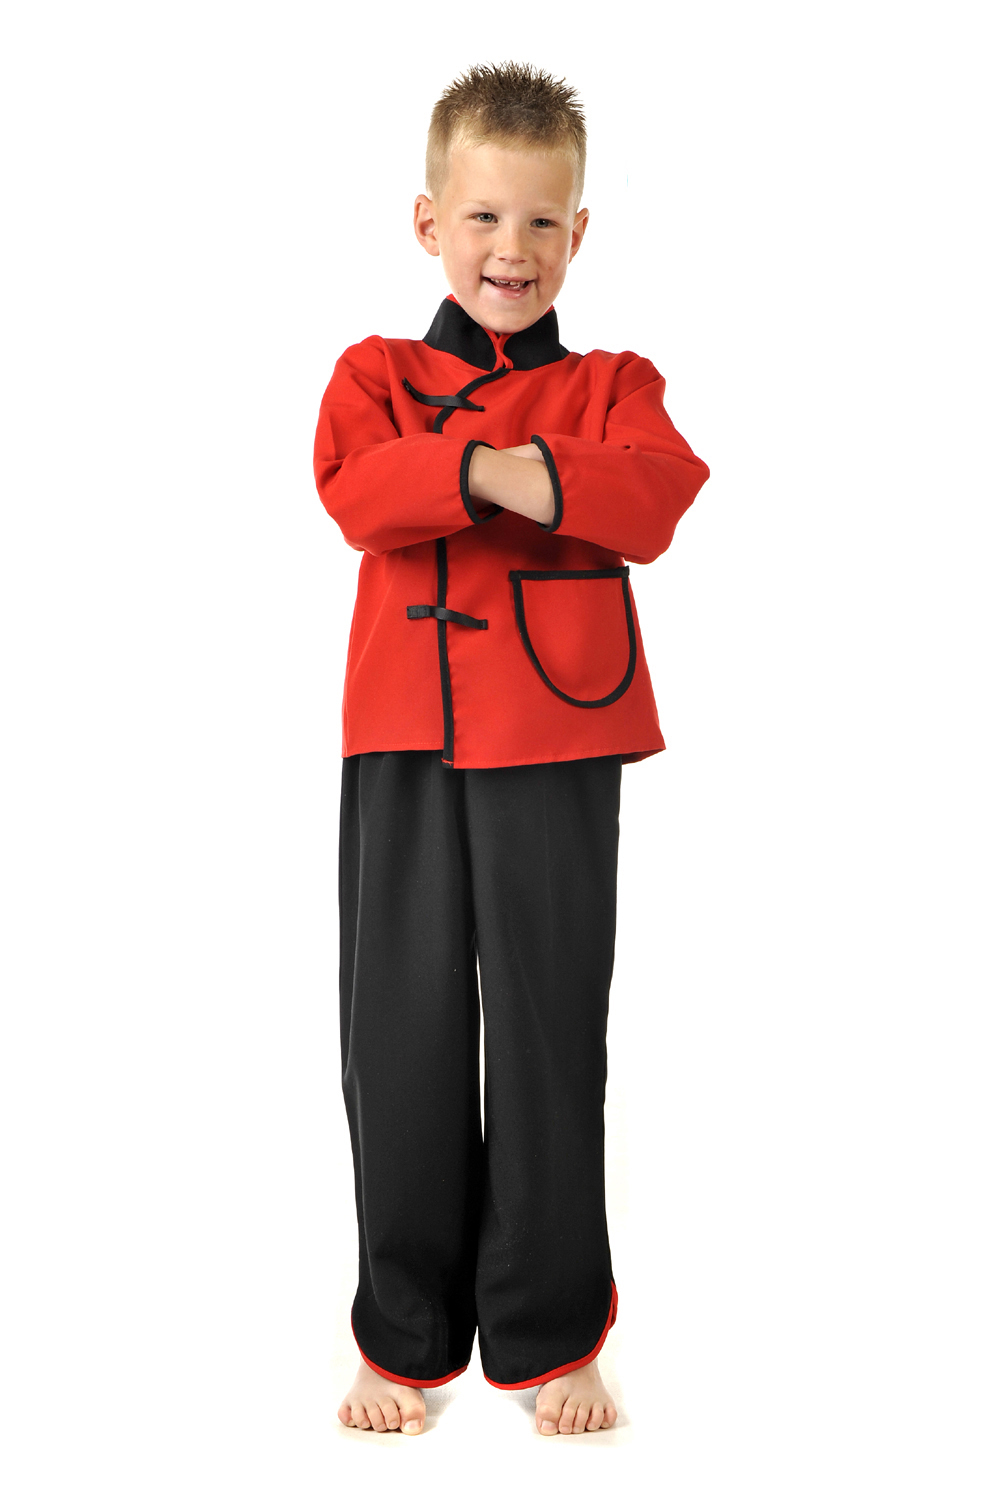 As boys of different age group have different sizes as they grow, it becomes highly difficult to find the right size and the best fit in boys suits. It also becomes really difficult to .